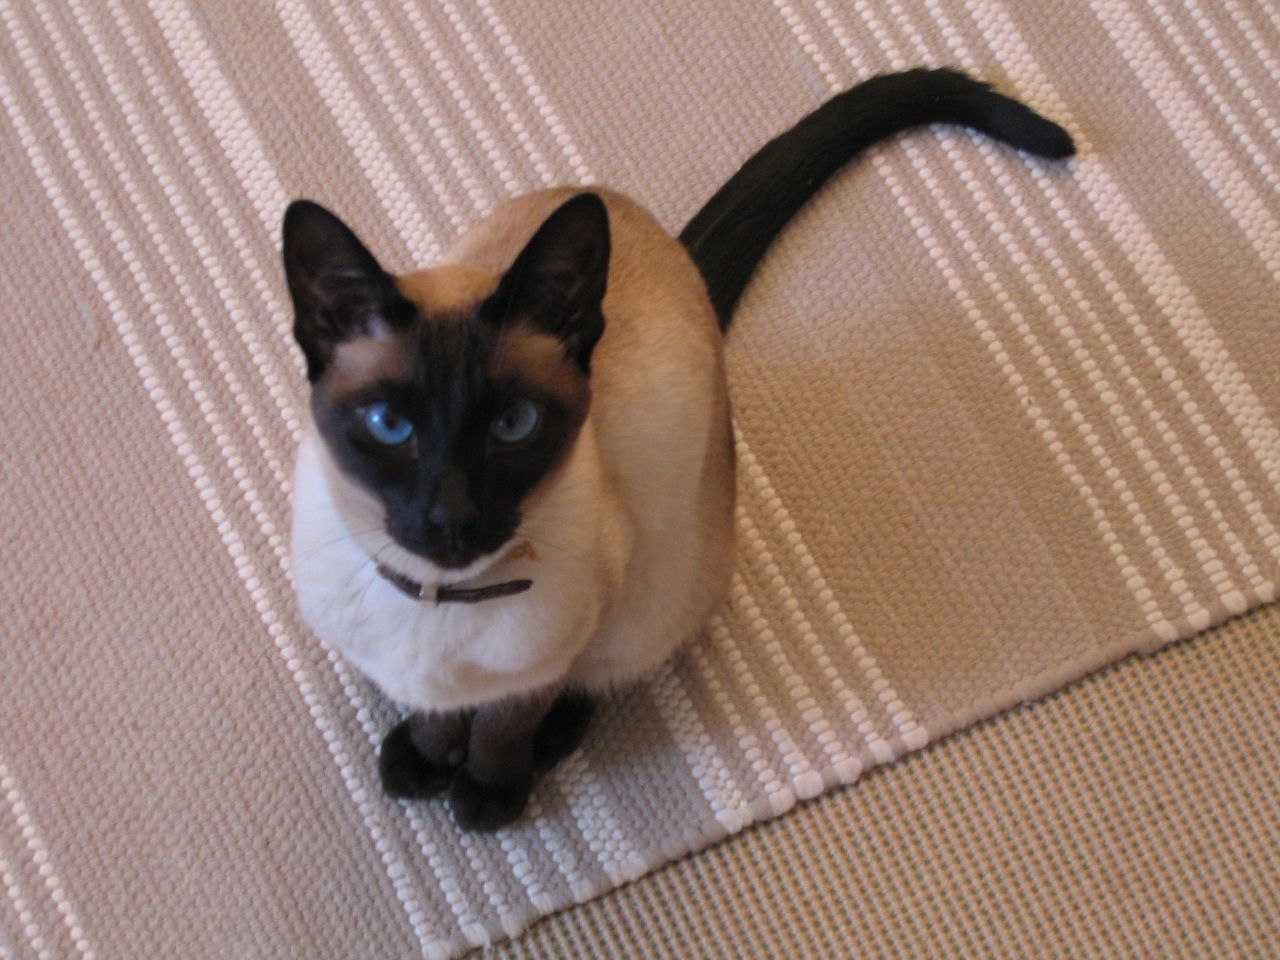 File:Siamese cat sitting.jpg